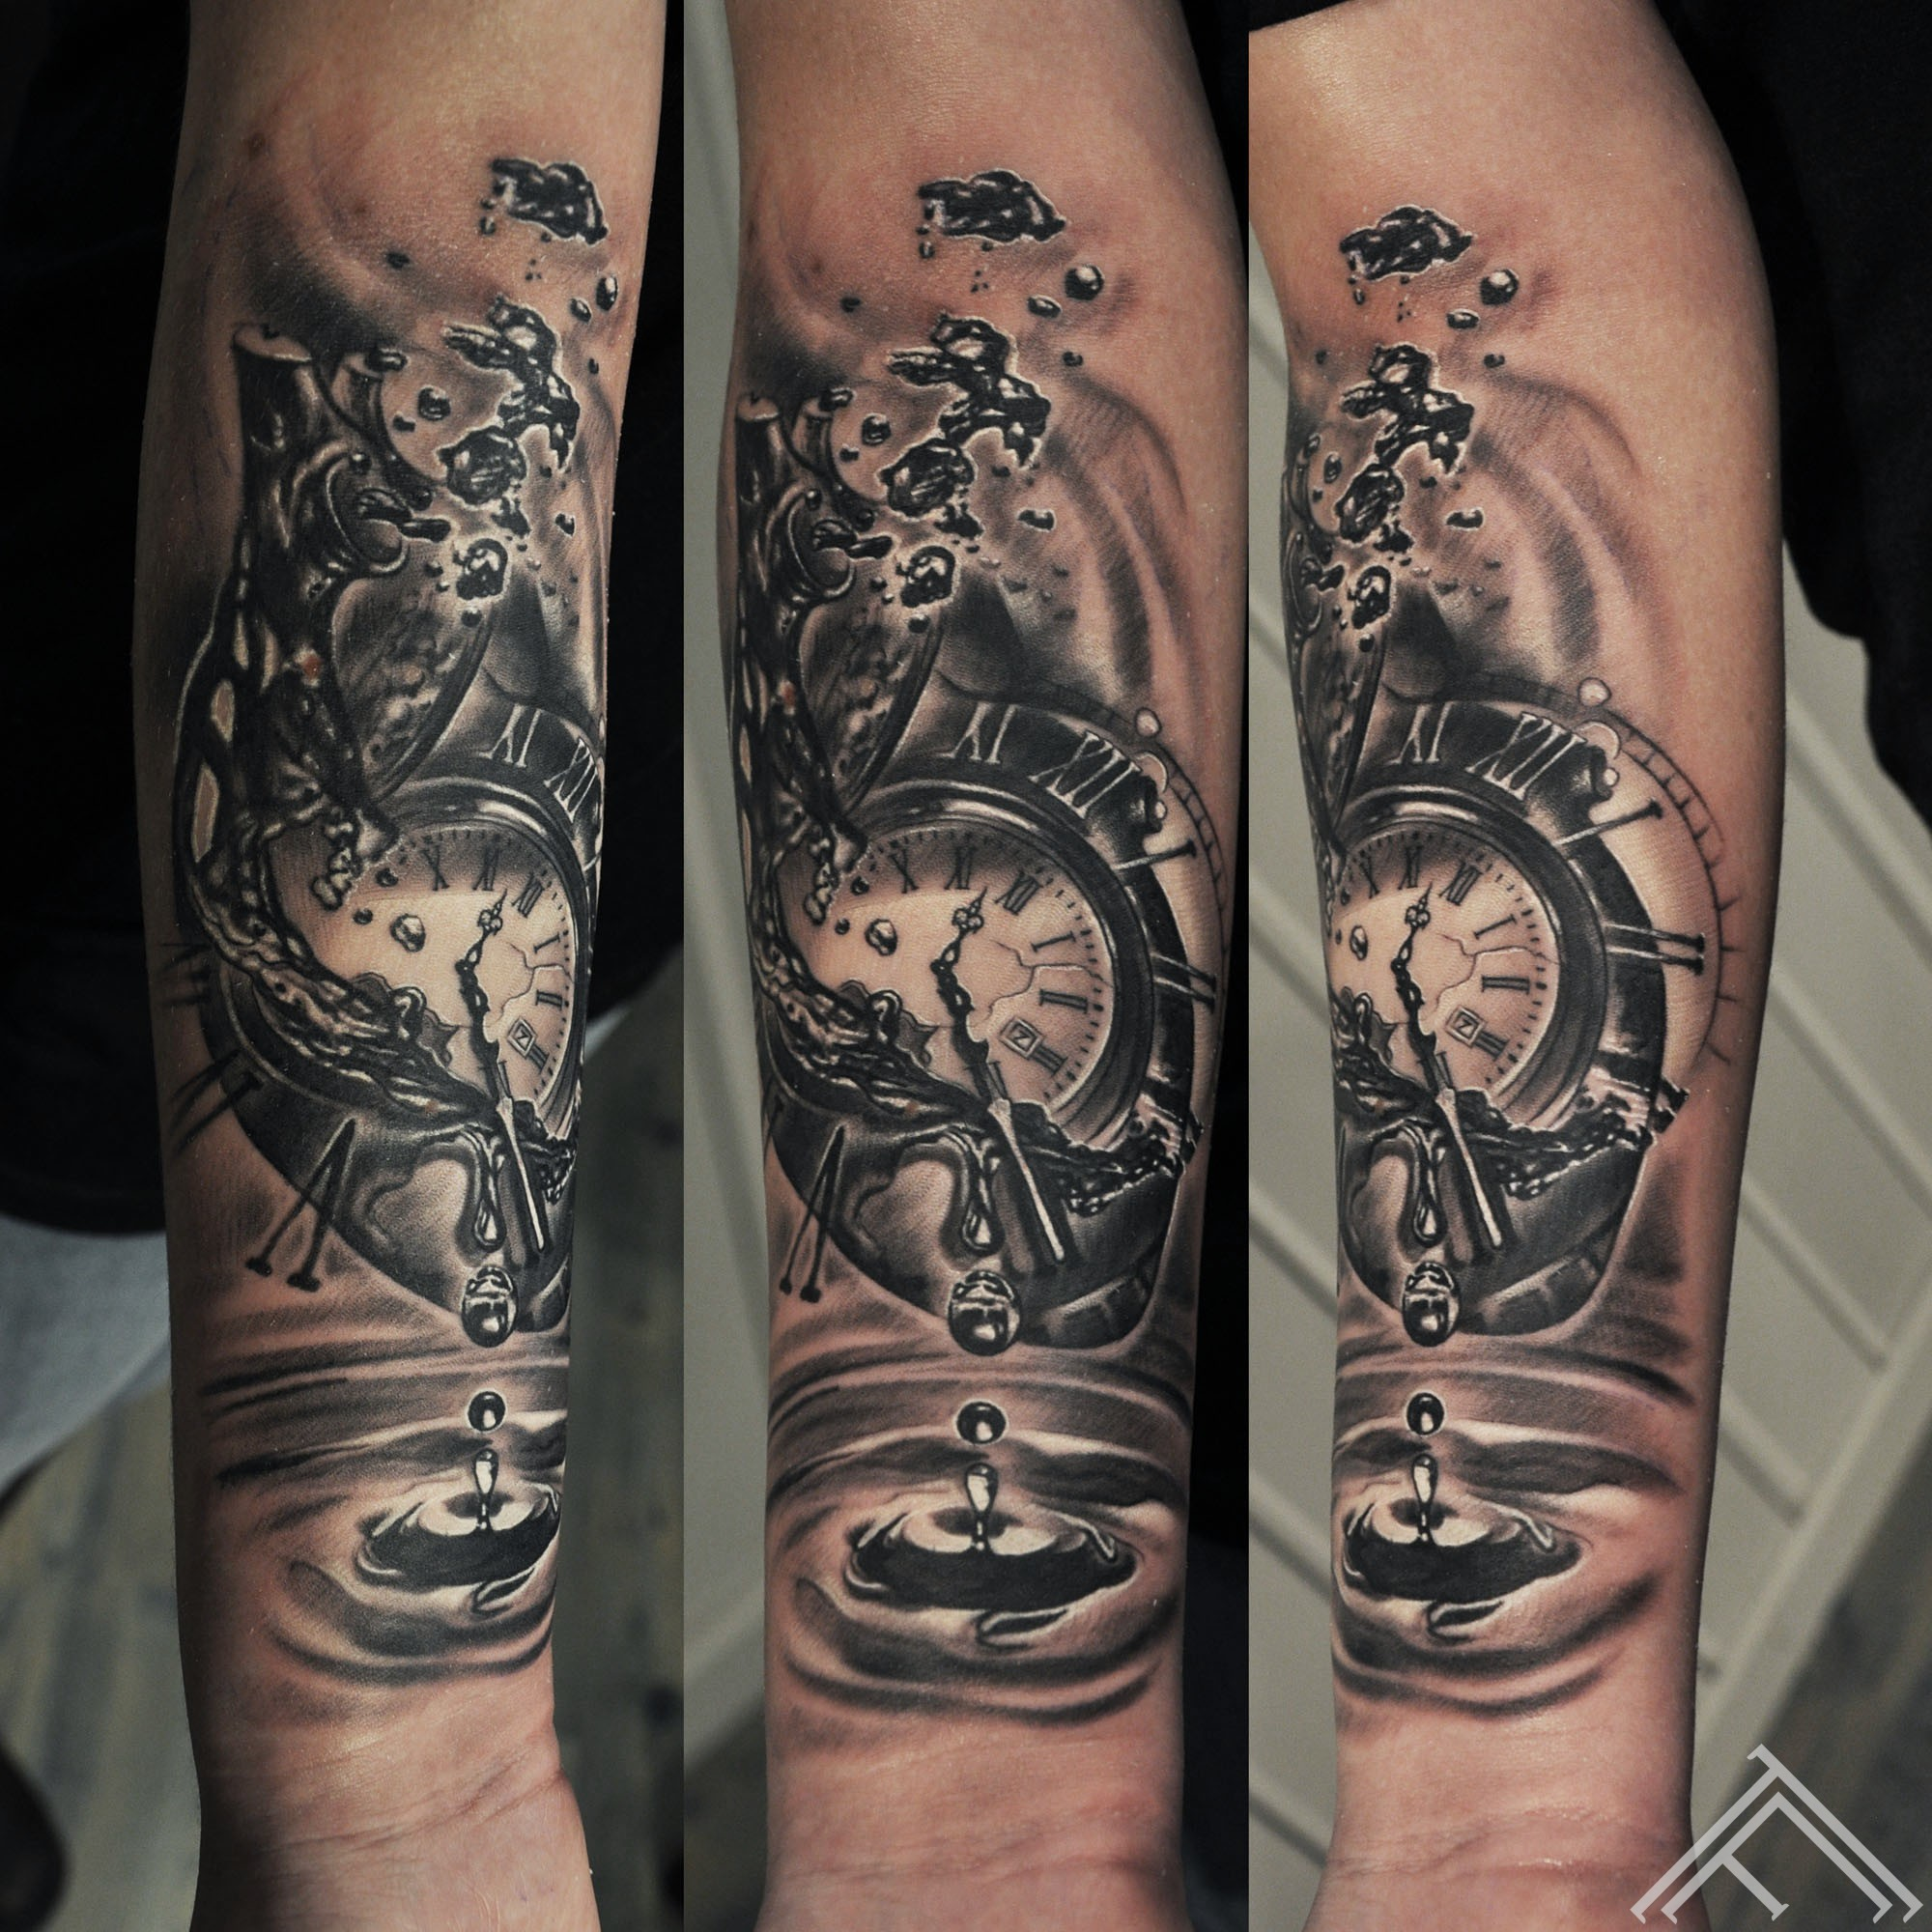 heart_water_waterdrop_time_clock_pocketwatch_bubble_tattoo_marispavlo_tattoofrequency_art_riga